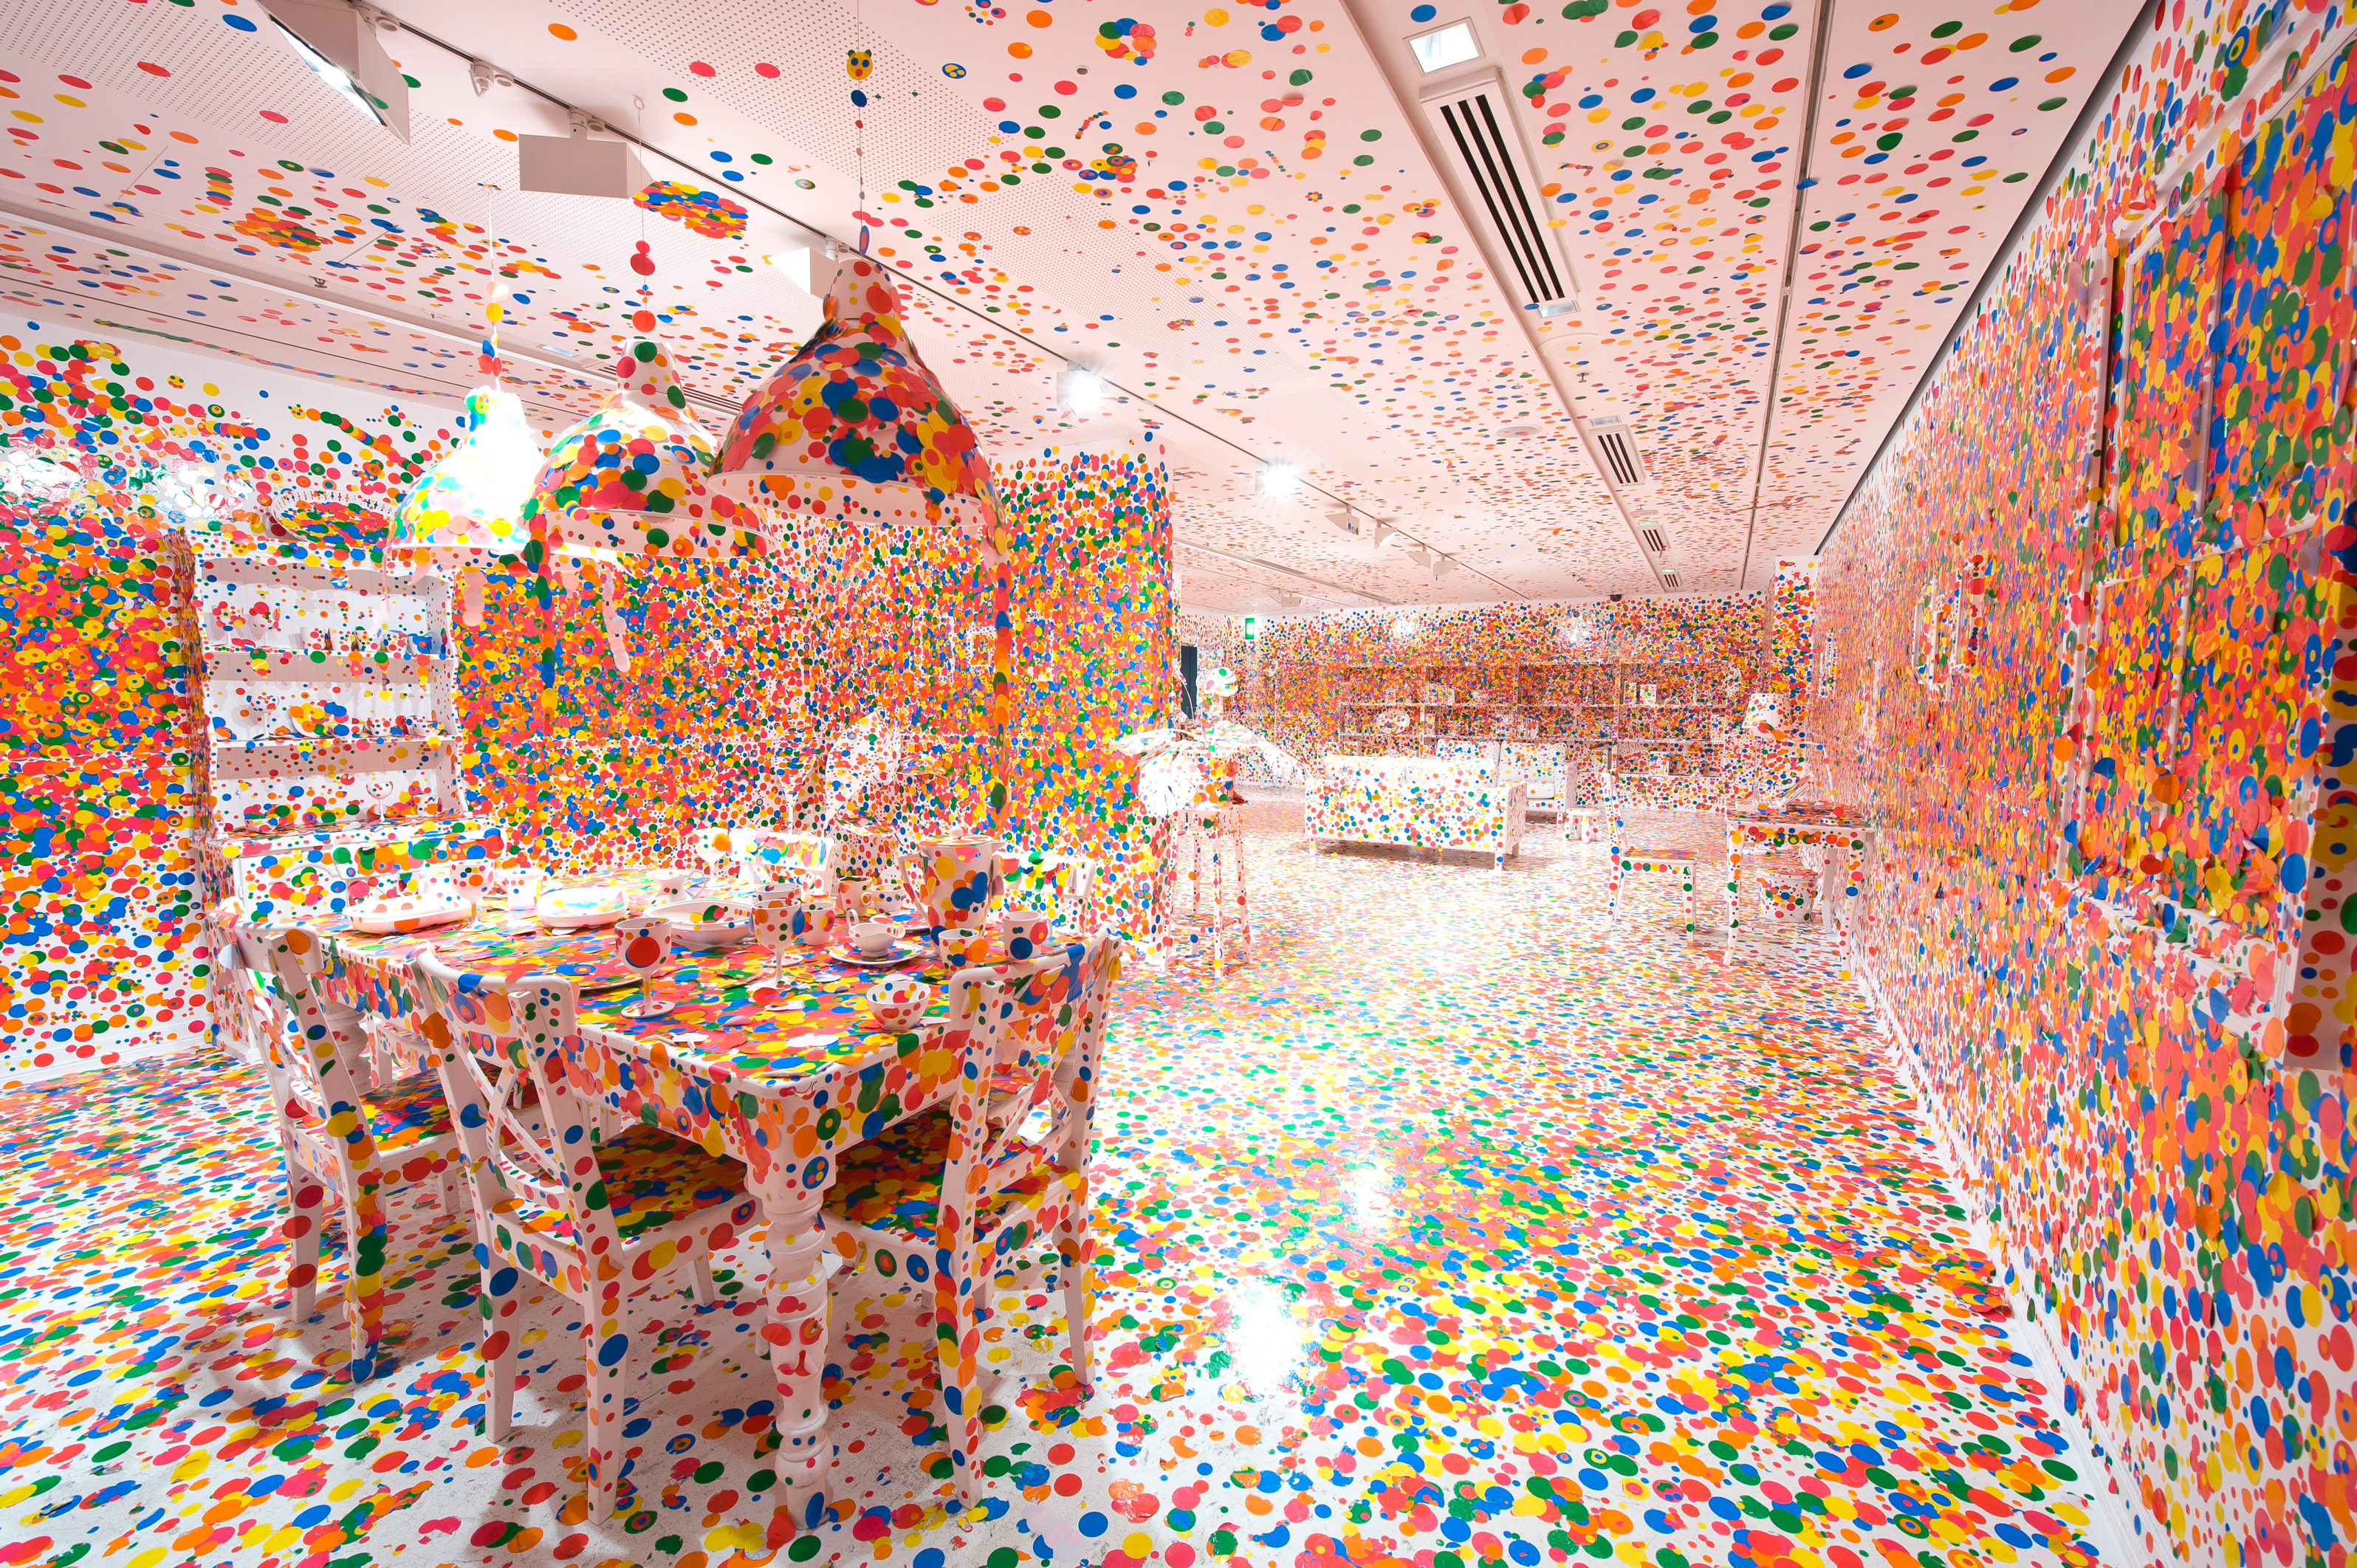 I2-Yayoi Kusama, The Obliteration Room, 2002 to present.jpg